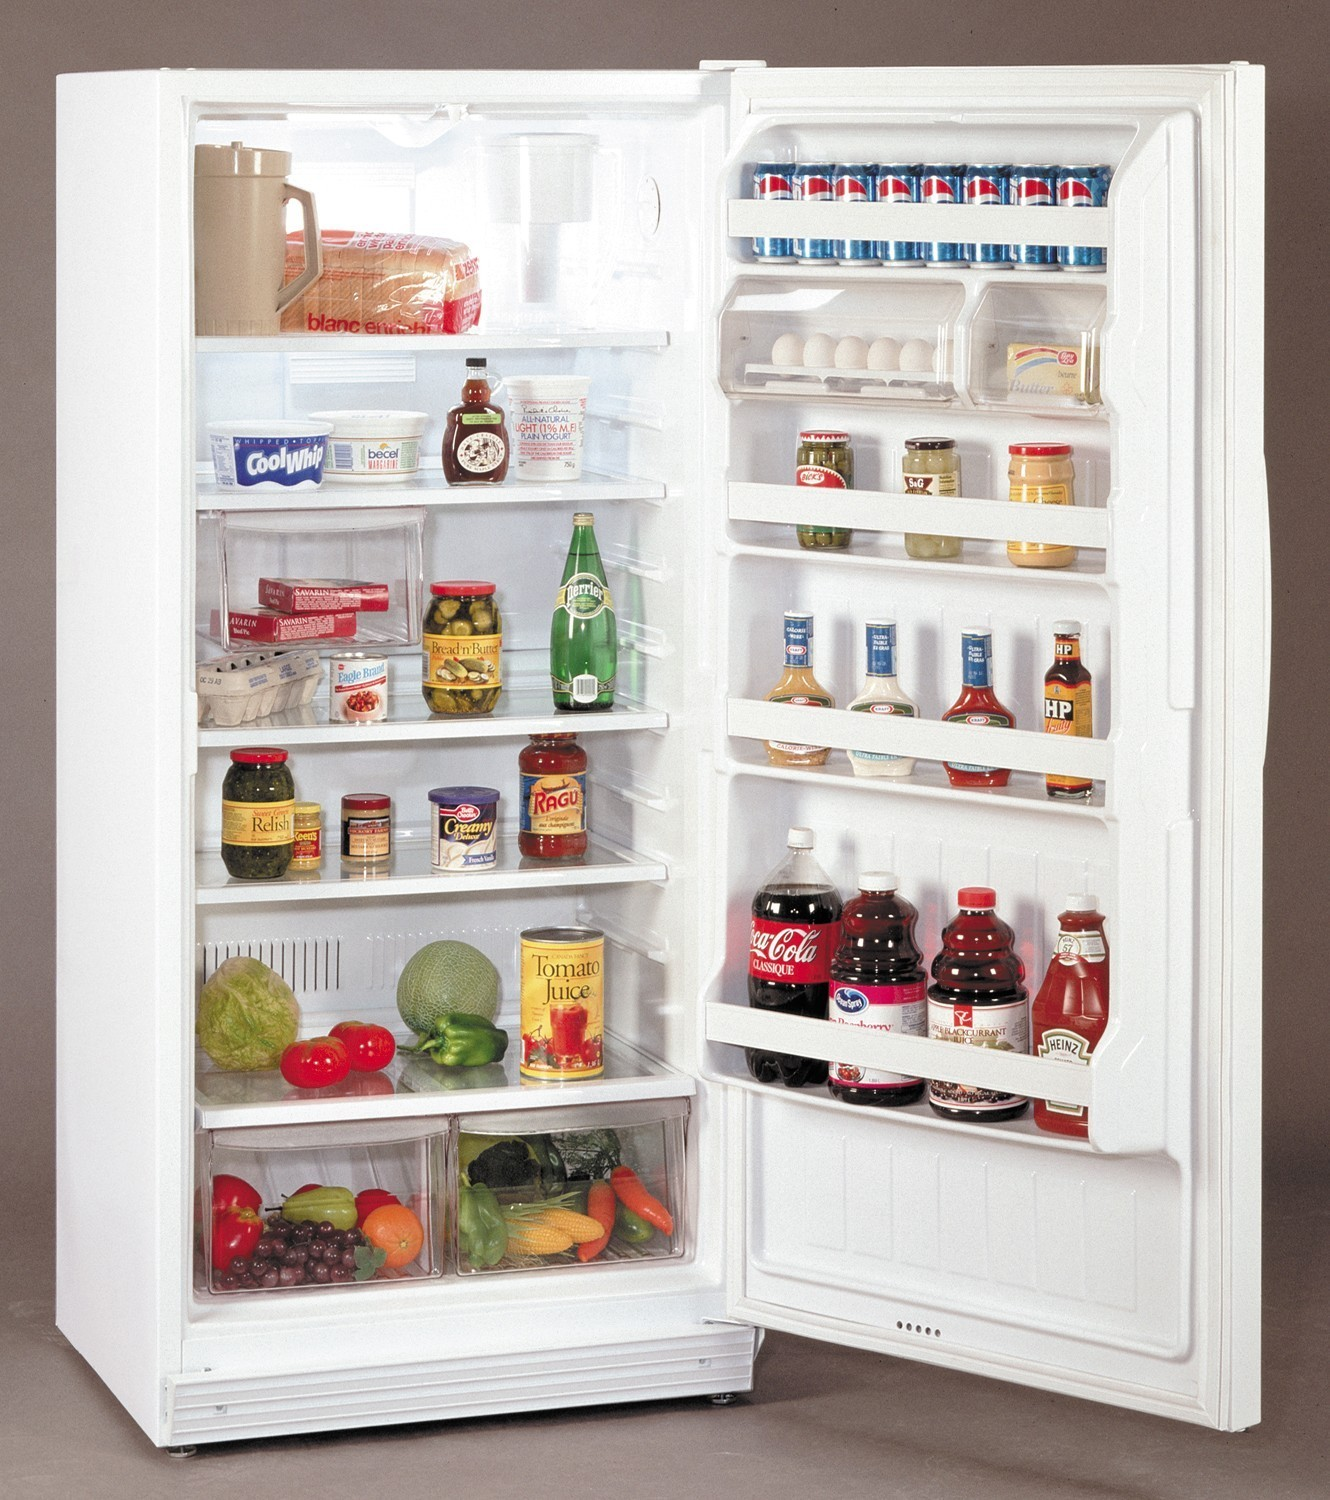 Refrigerator reviews